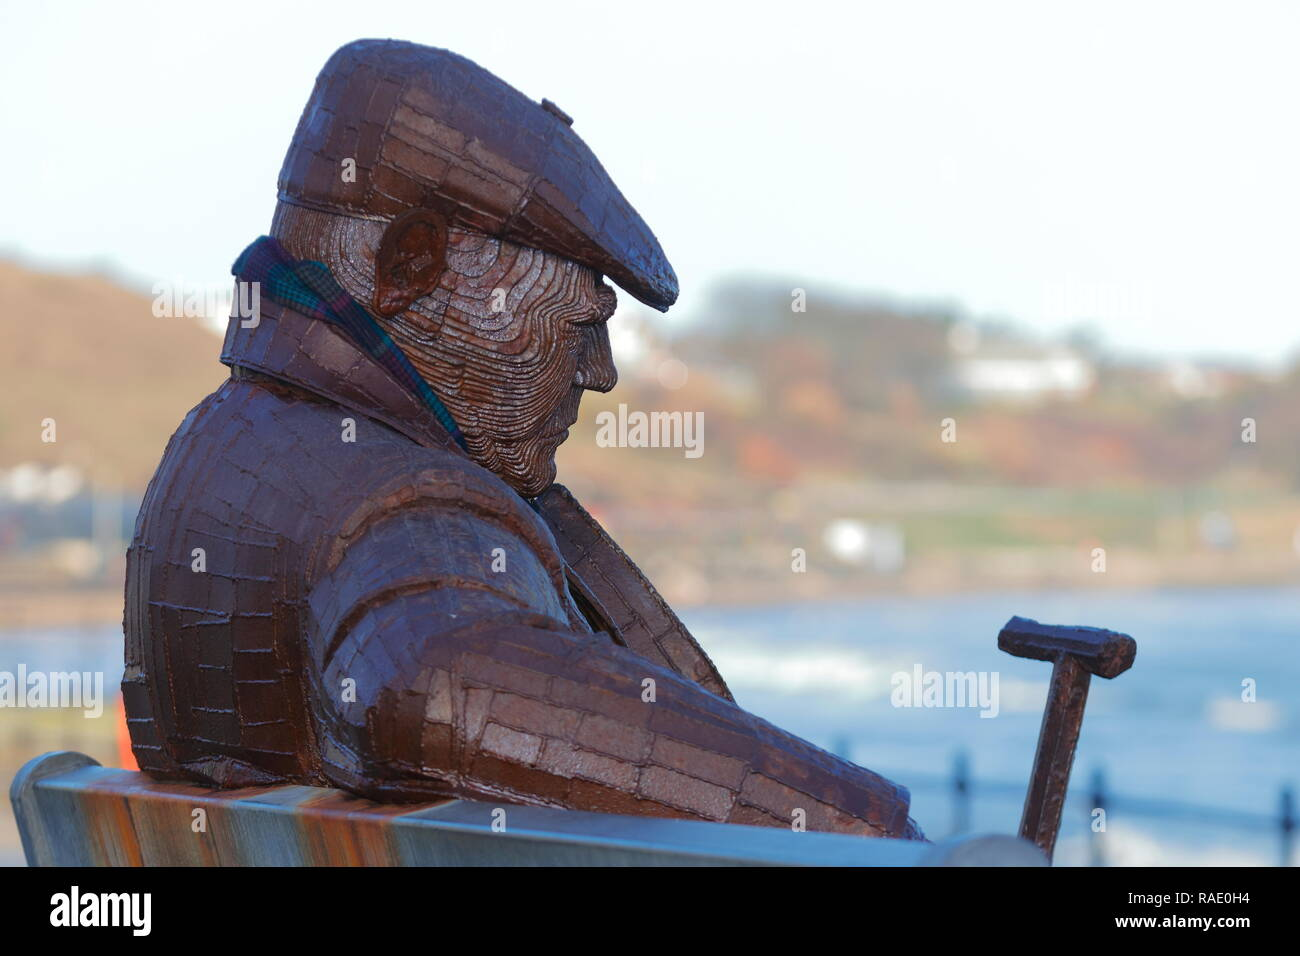 Freddie Gilroy and the Belsen Stragglers' is a giant steel sculpture made by Ray Lonsdale, which is on permanent display in Scarborough,North Bay. - Stock Image